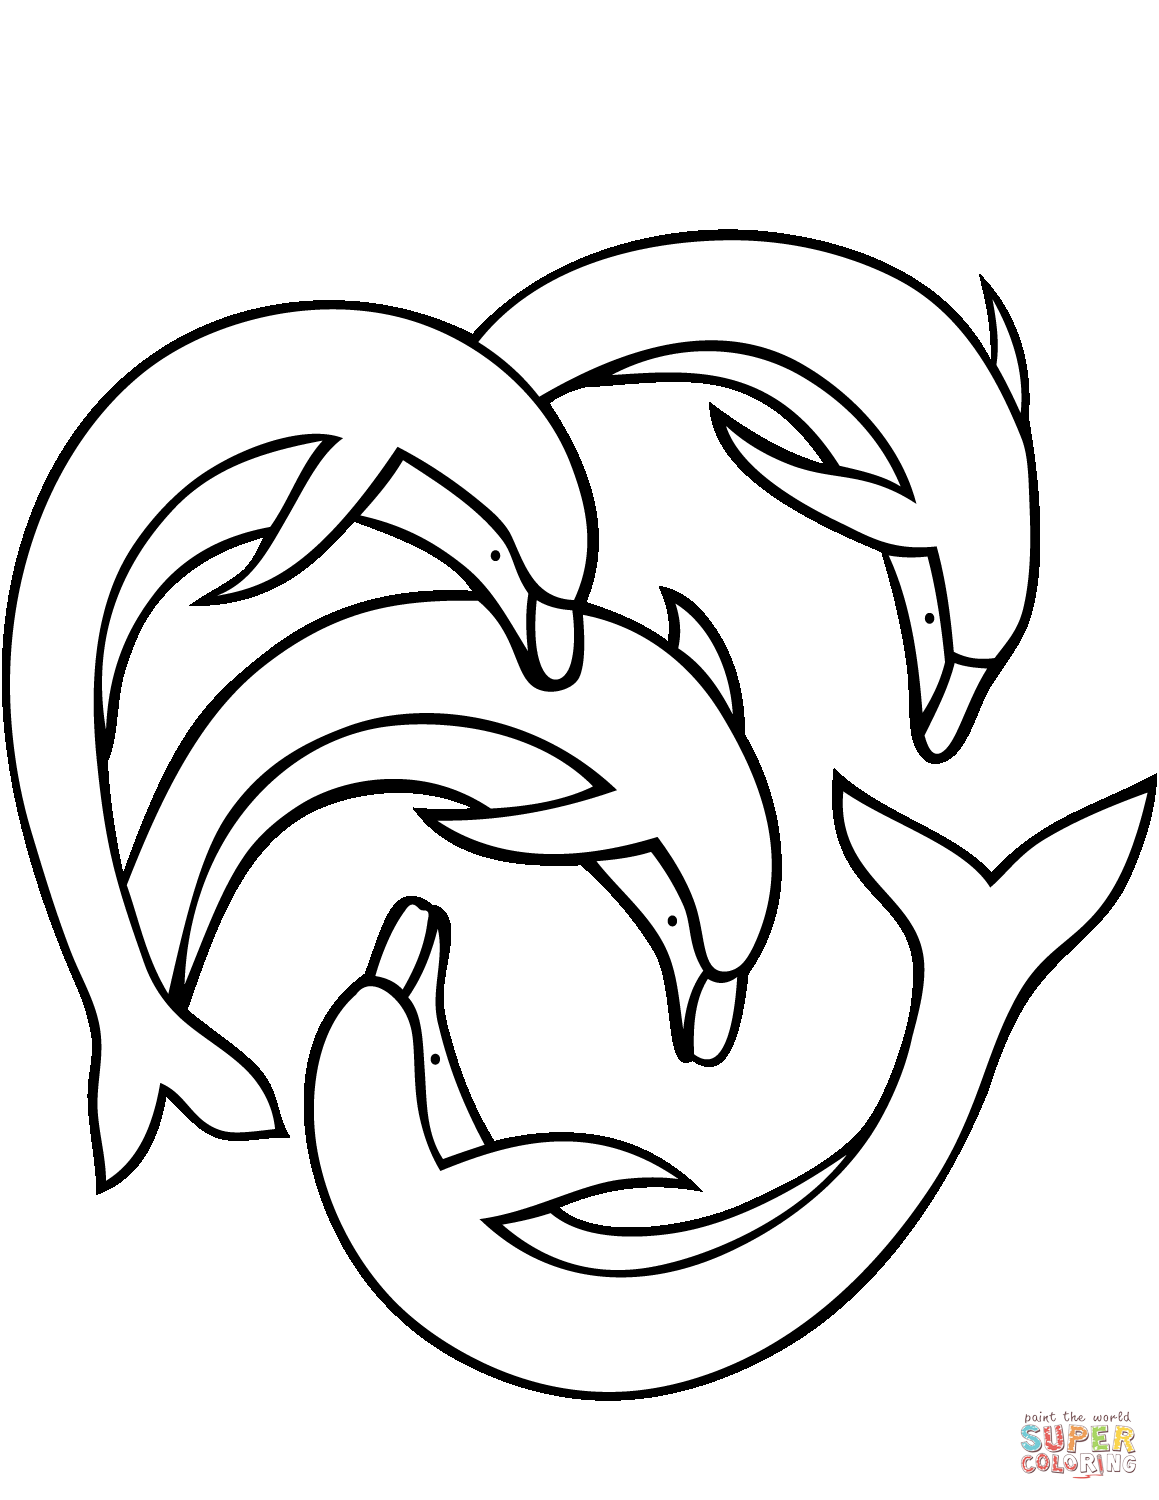 Four Dolphins Coloring Page